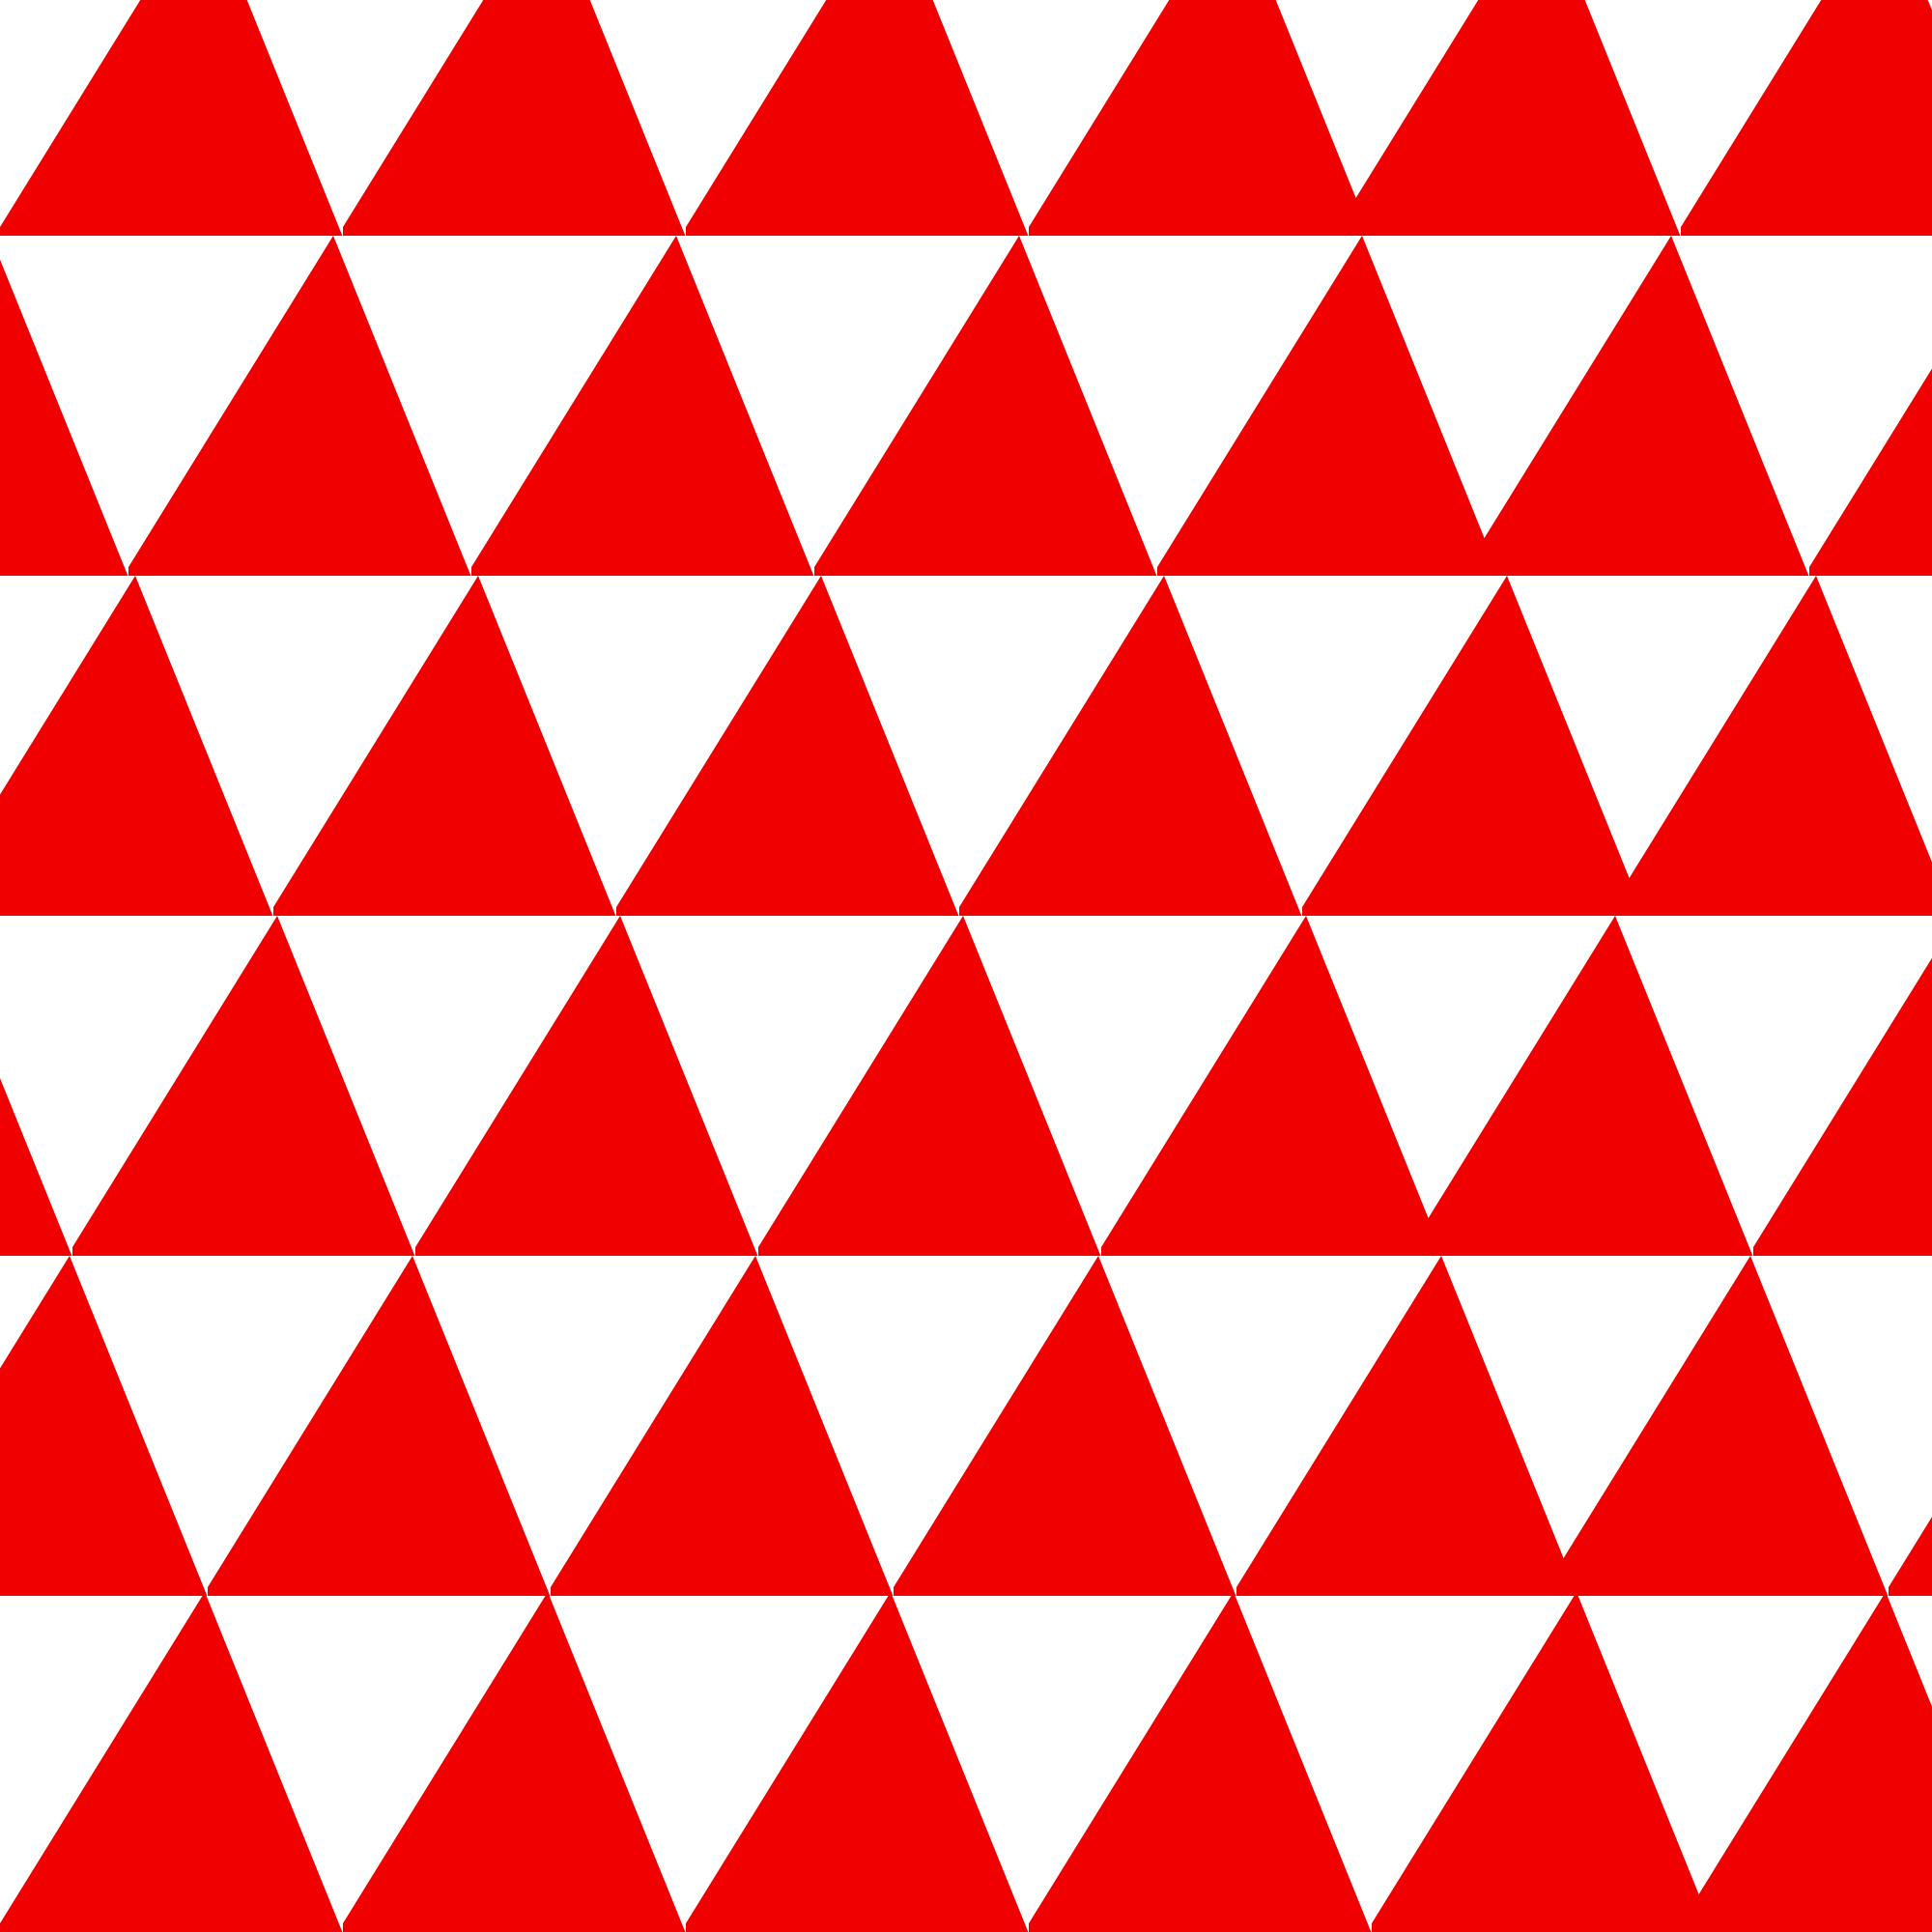 Triangle pattern png. Free photo red black